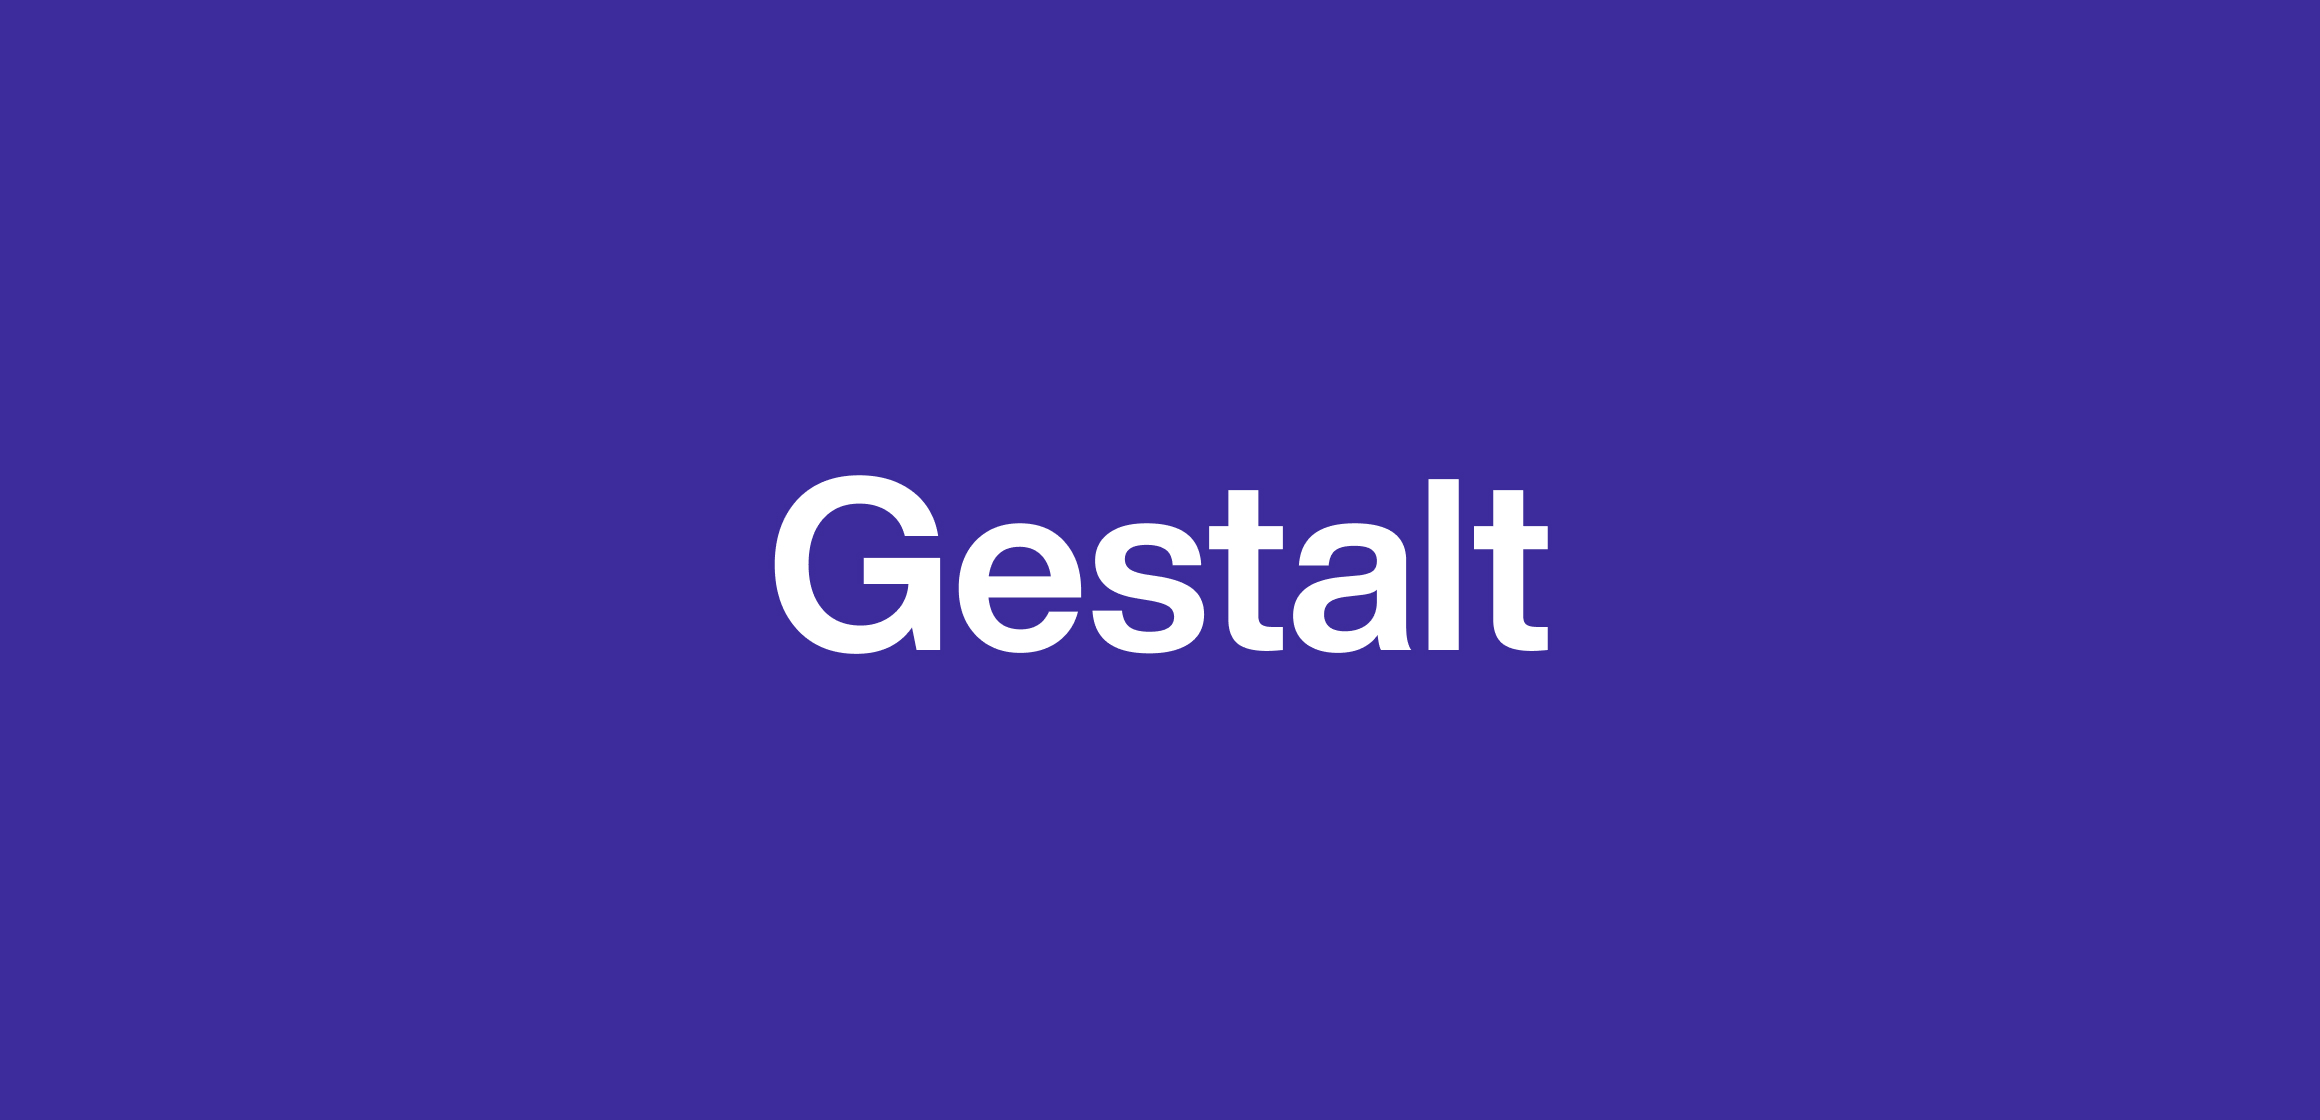 A purple picture with gestalt written in sans serif.